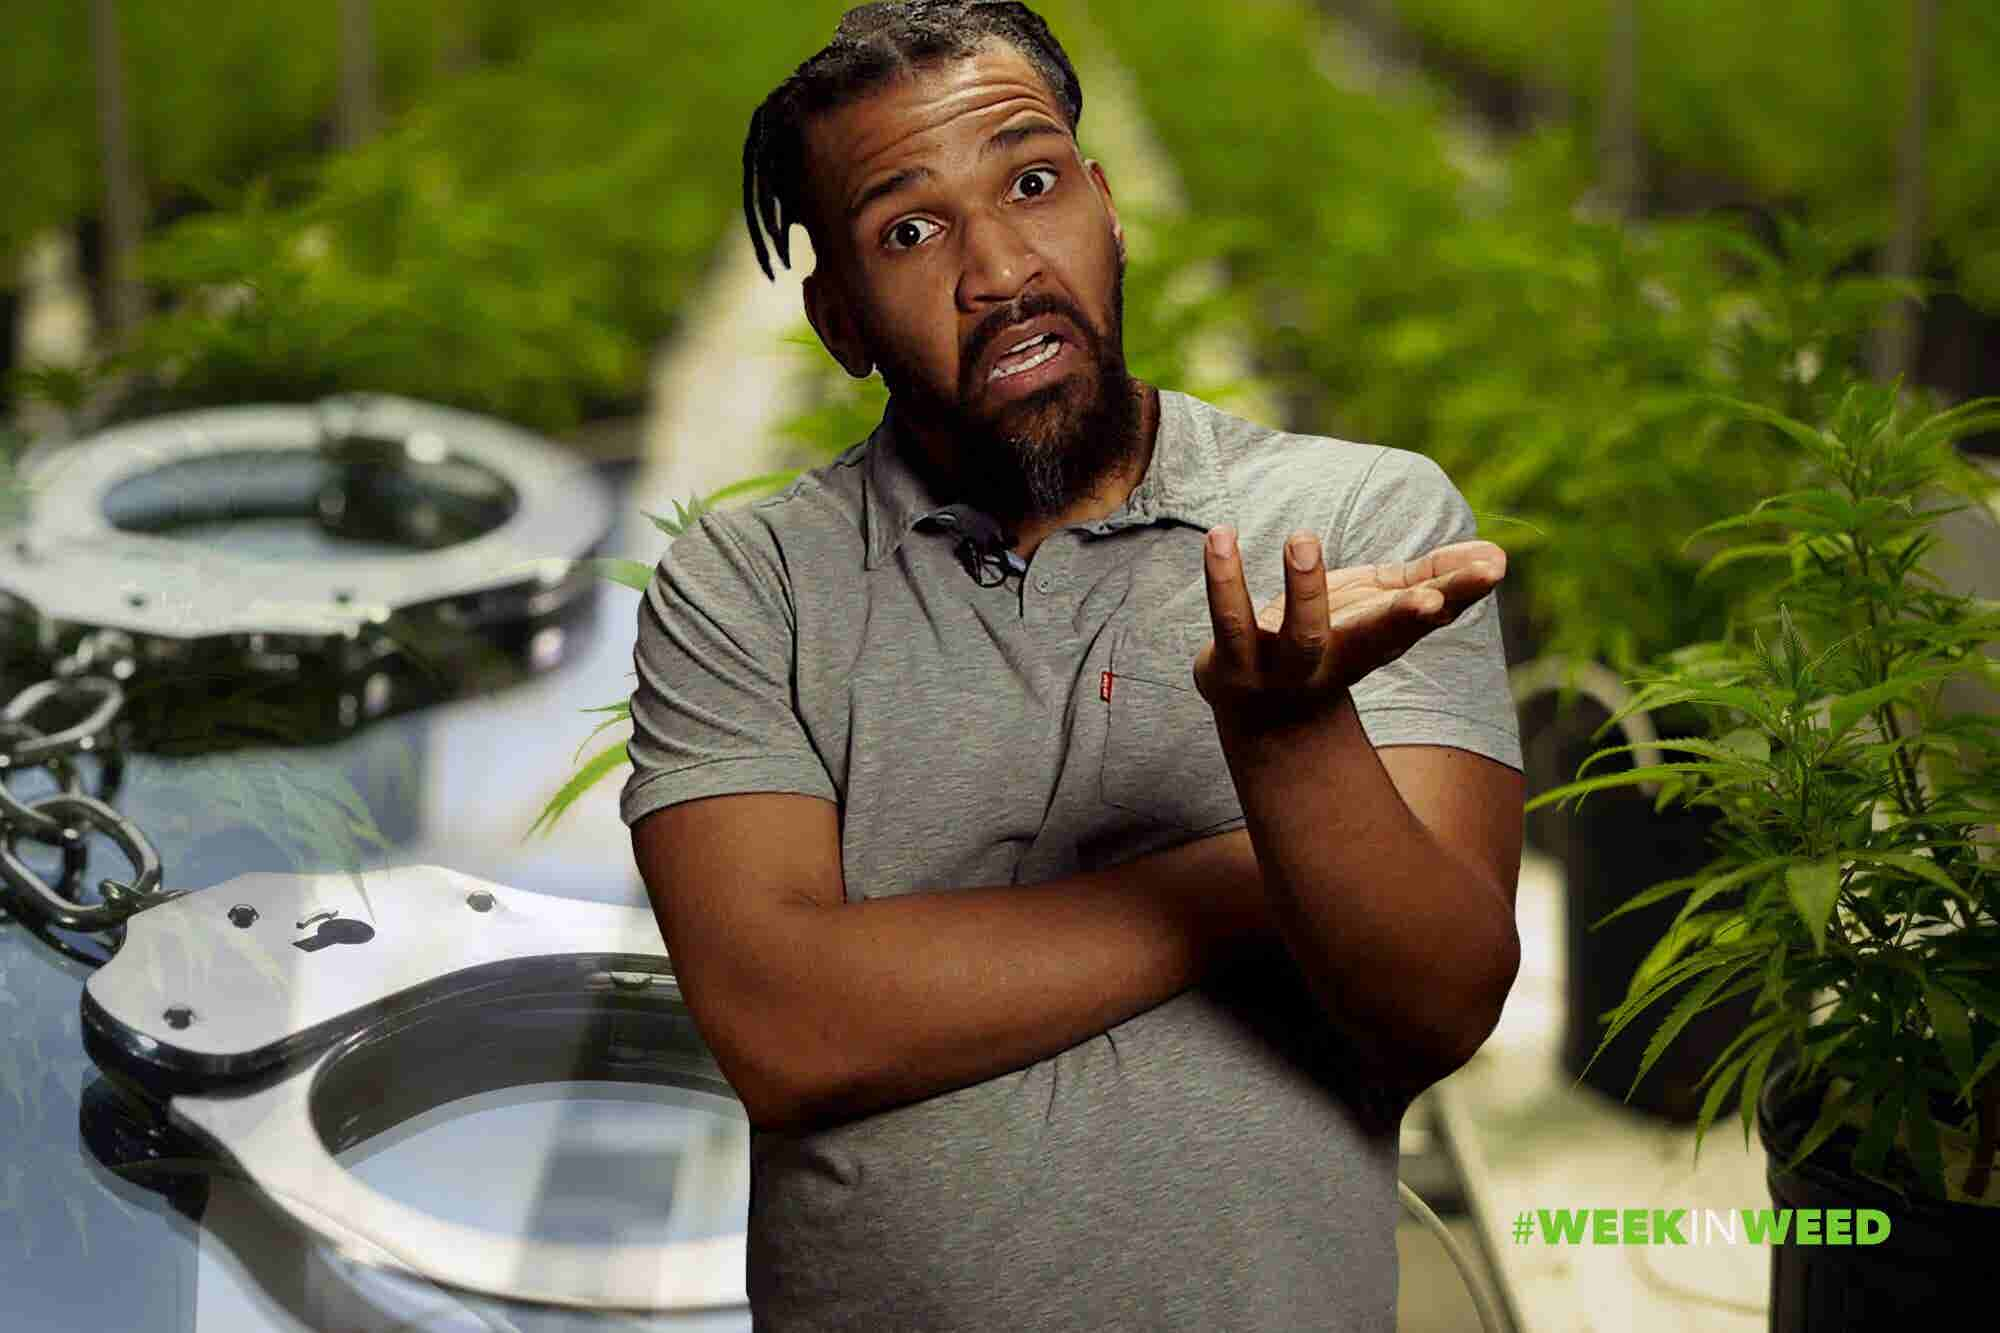 This Week in Weed: You Won't Believe Our Last Story!